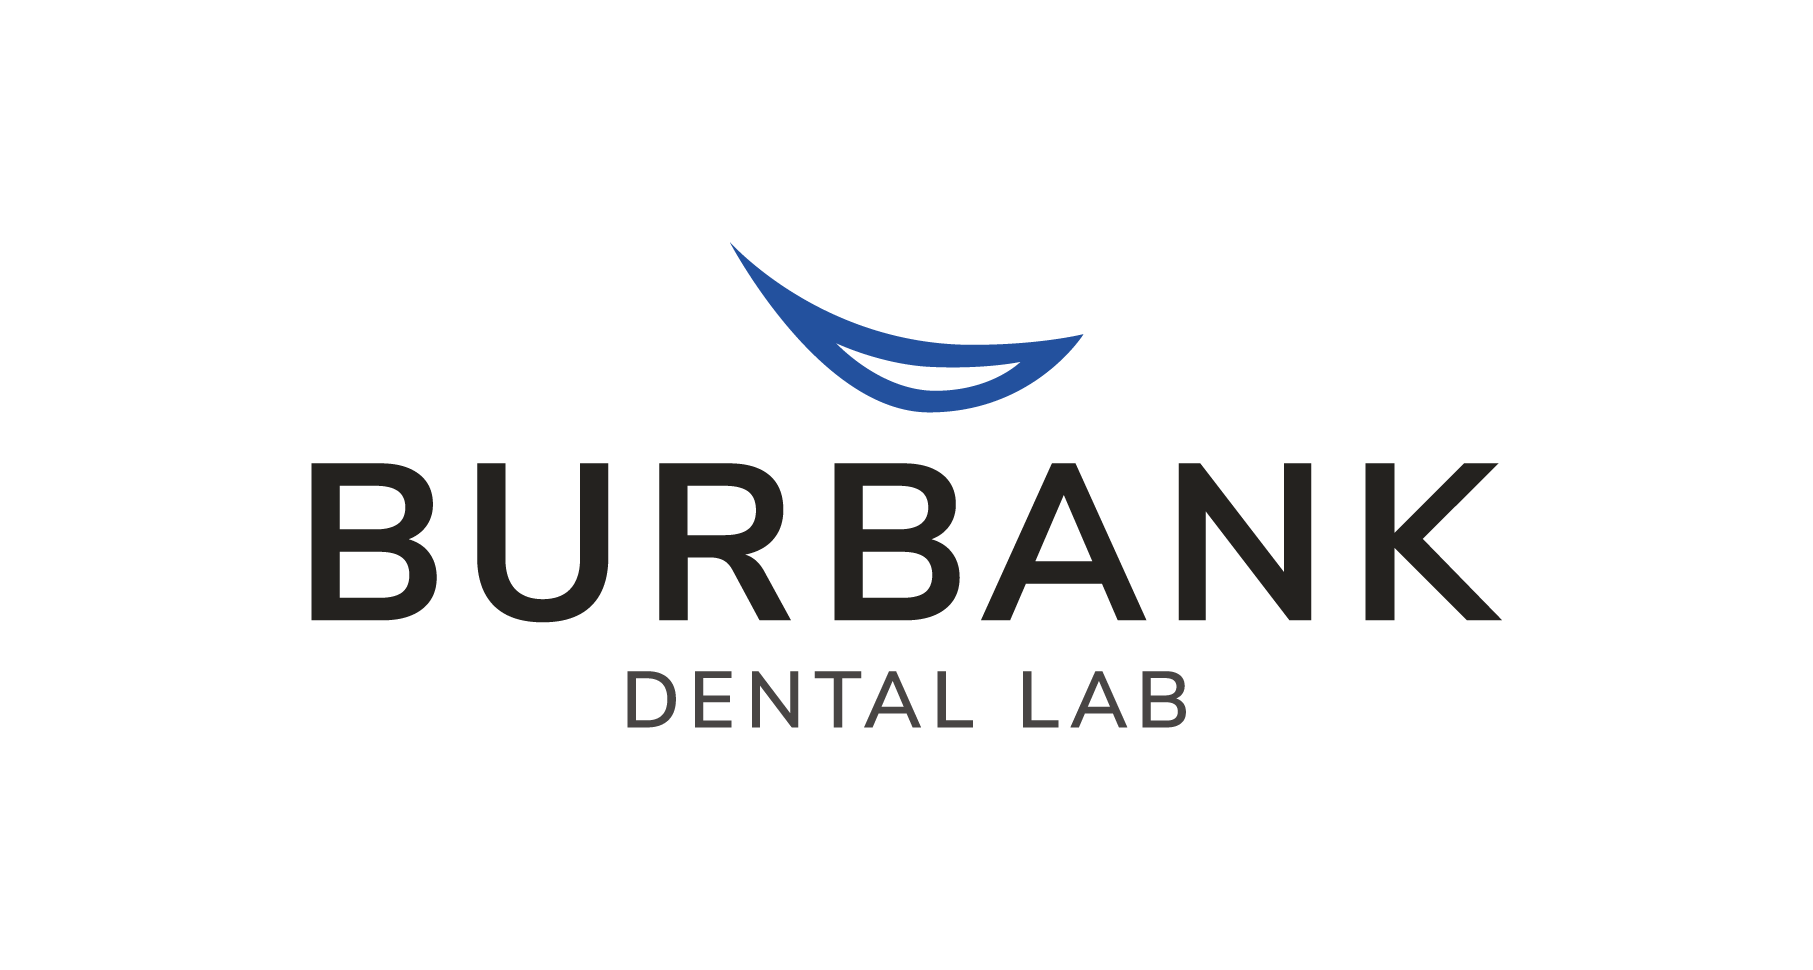 Burbank Dental Lab